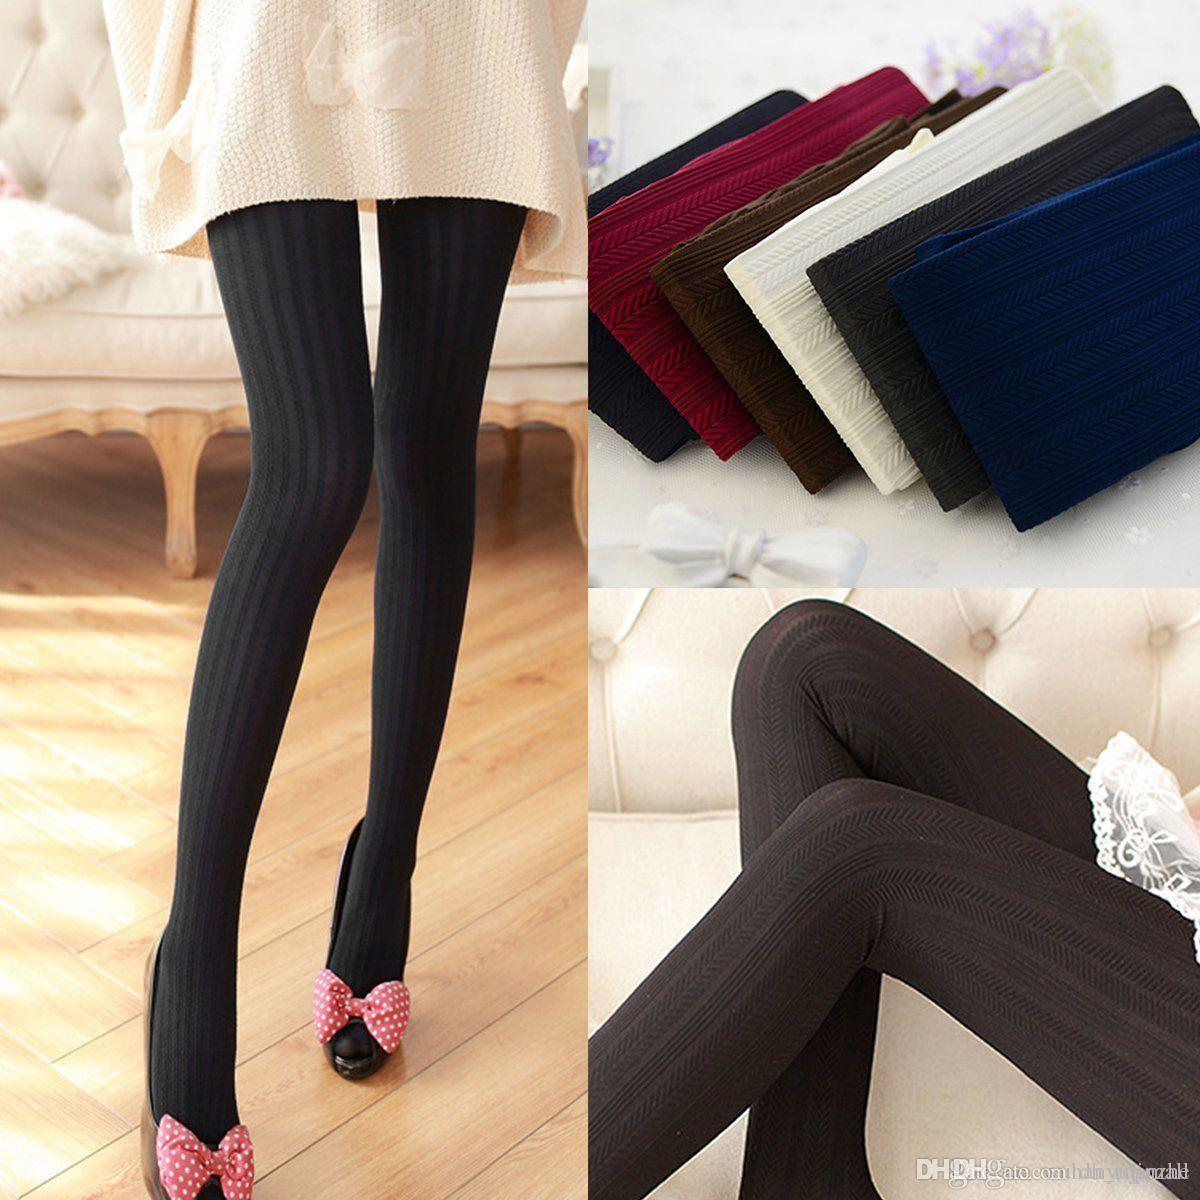 b3f42707792 2019 2016 Autumn Winter Women Tights Styles Sexy Women Cotton Pantyhose  Black Gray Foot Female Leggings Fashion Slim Tights CL083 From Dh topmall